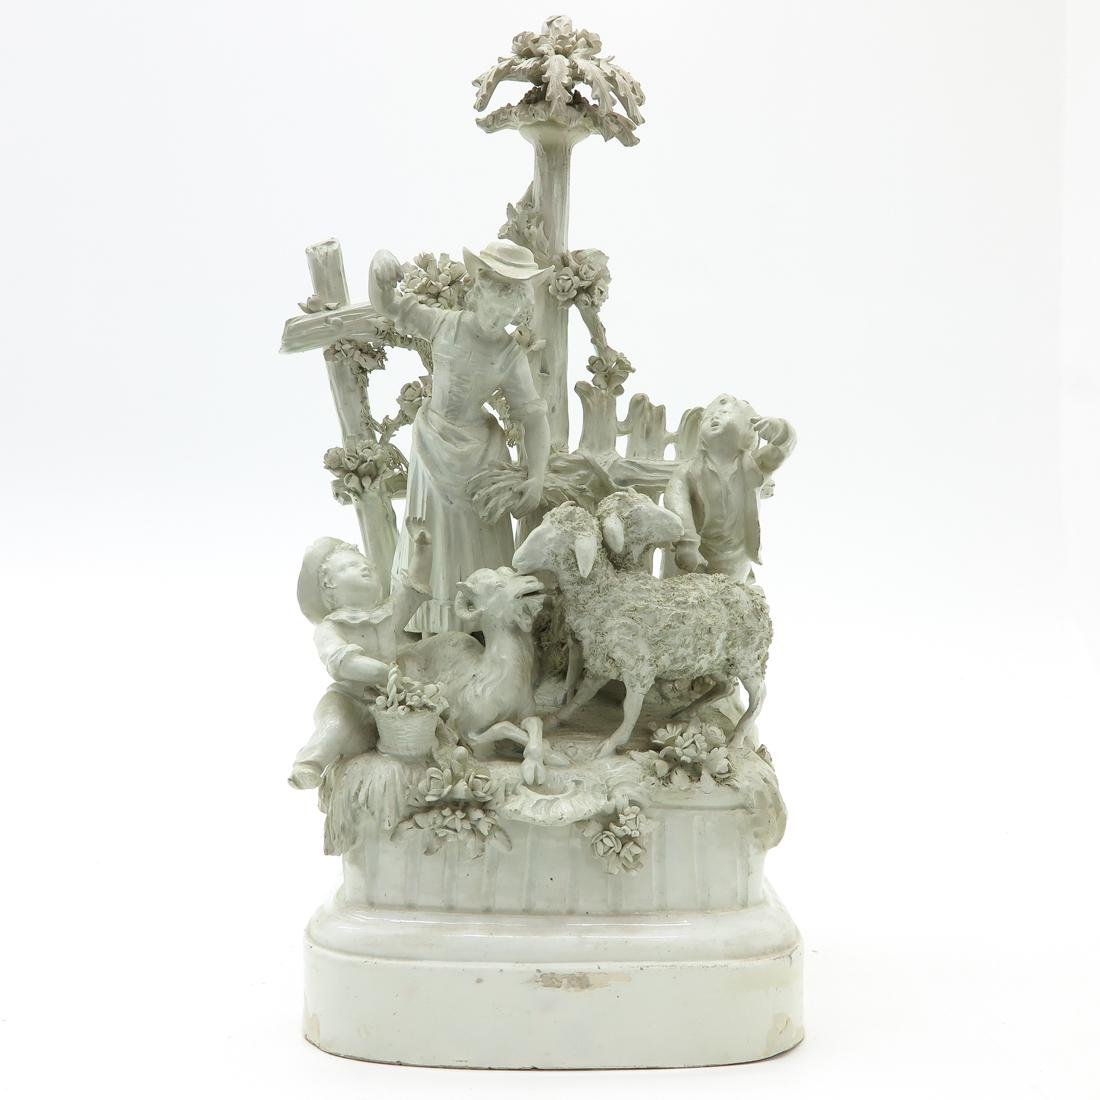 Sculpture Signed GBM Milano